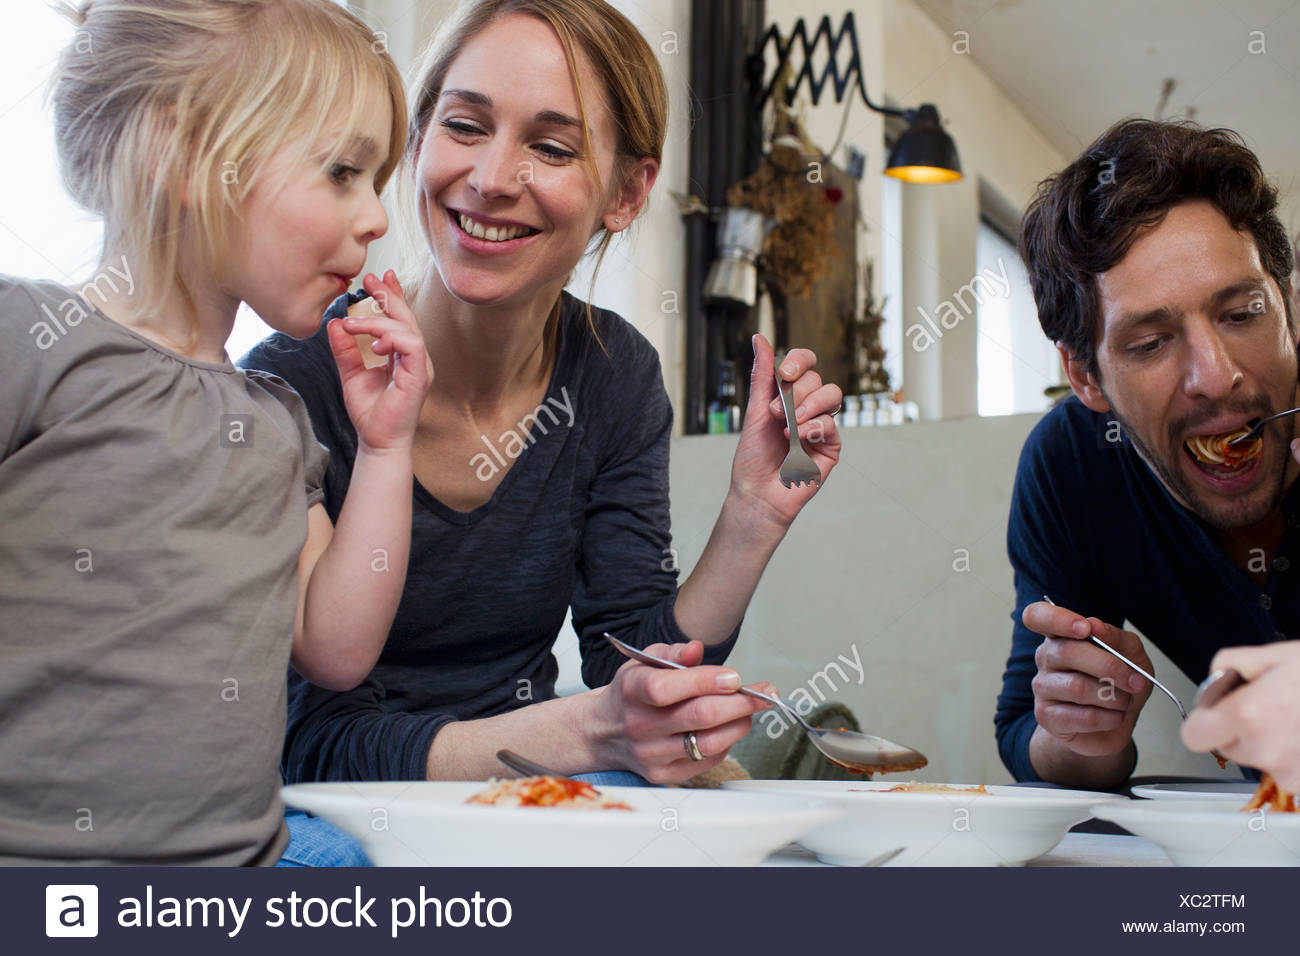 Mid adult parents and two daughters eating a spaghetti meal - Stock Image